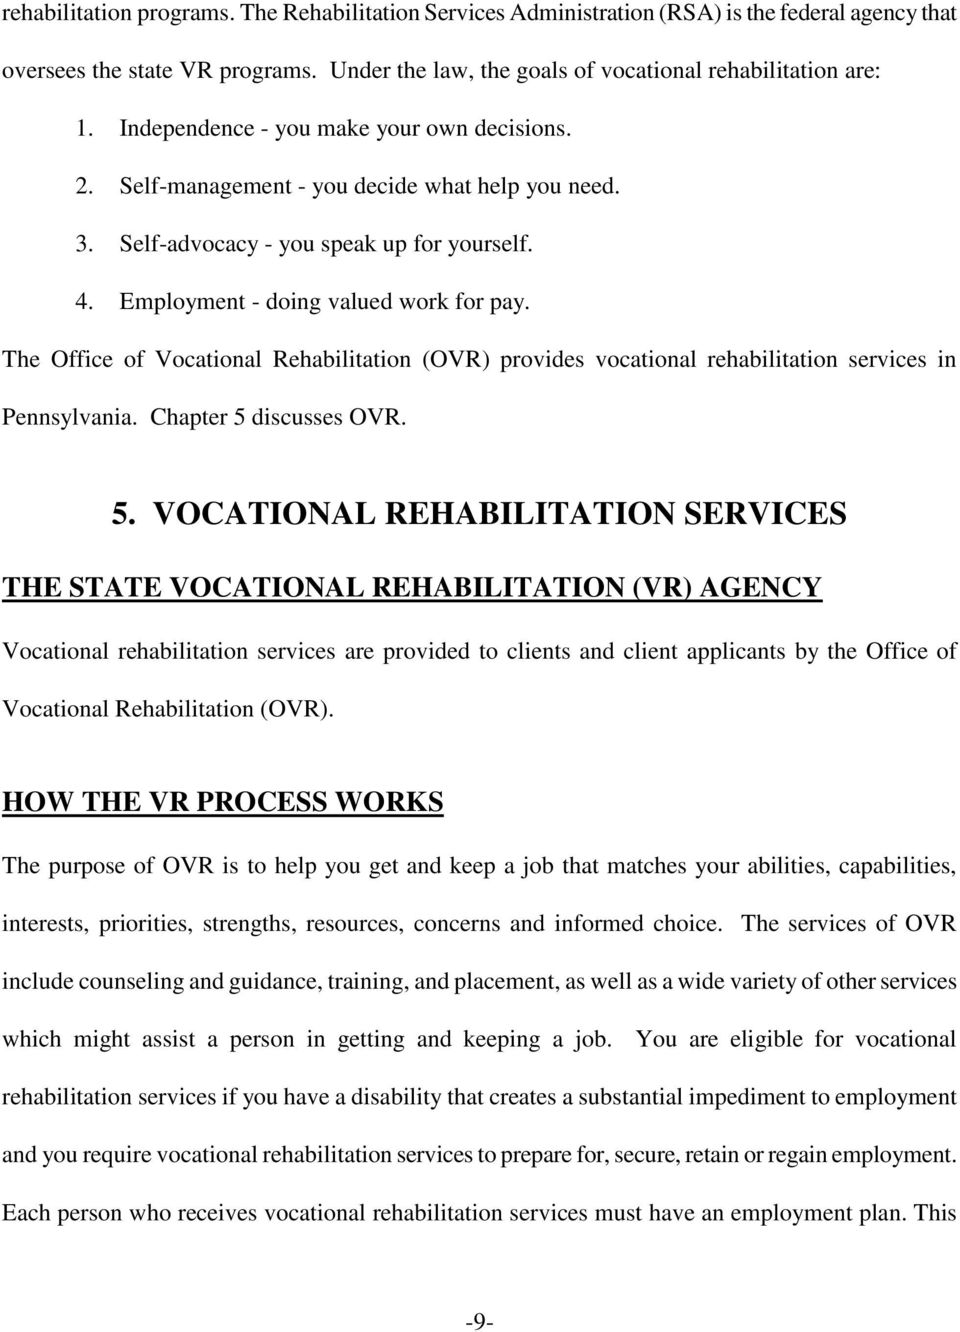 The Office of Vocational Rehabilitation (OVR) provides vocational rehabilitation services in Pennsylvania. Chapter 5